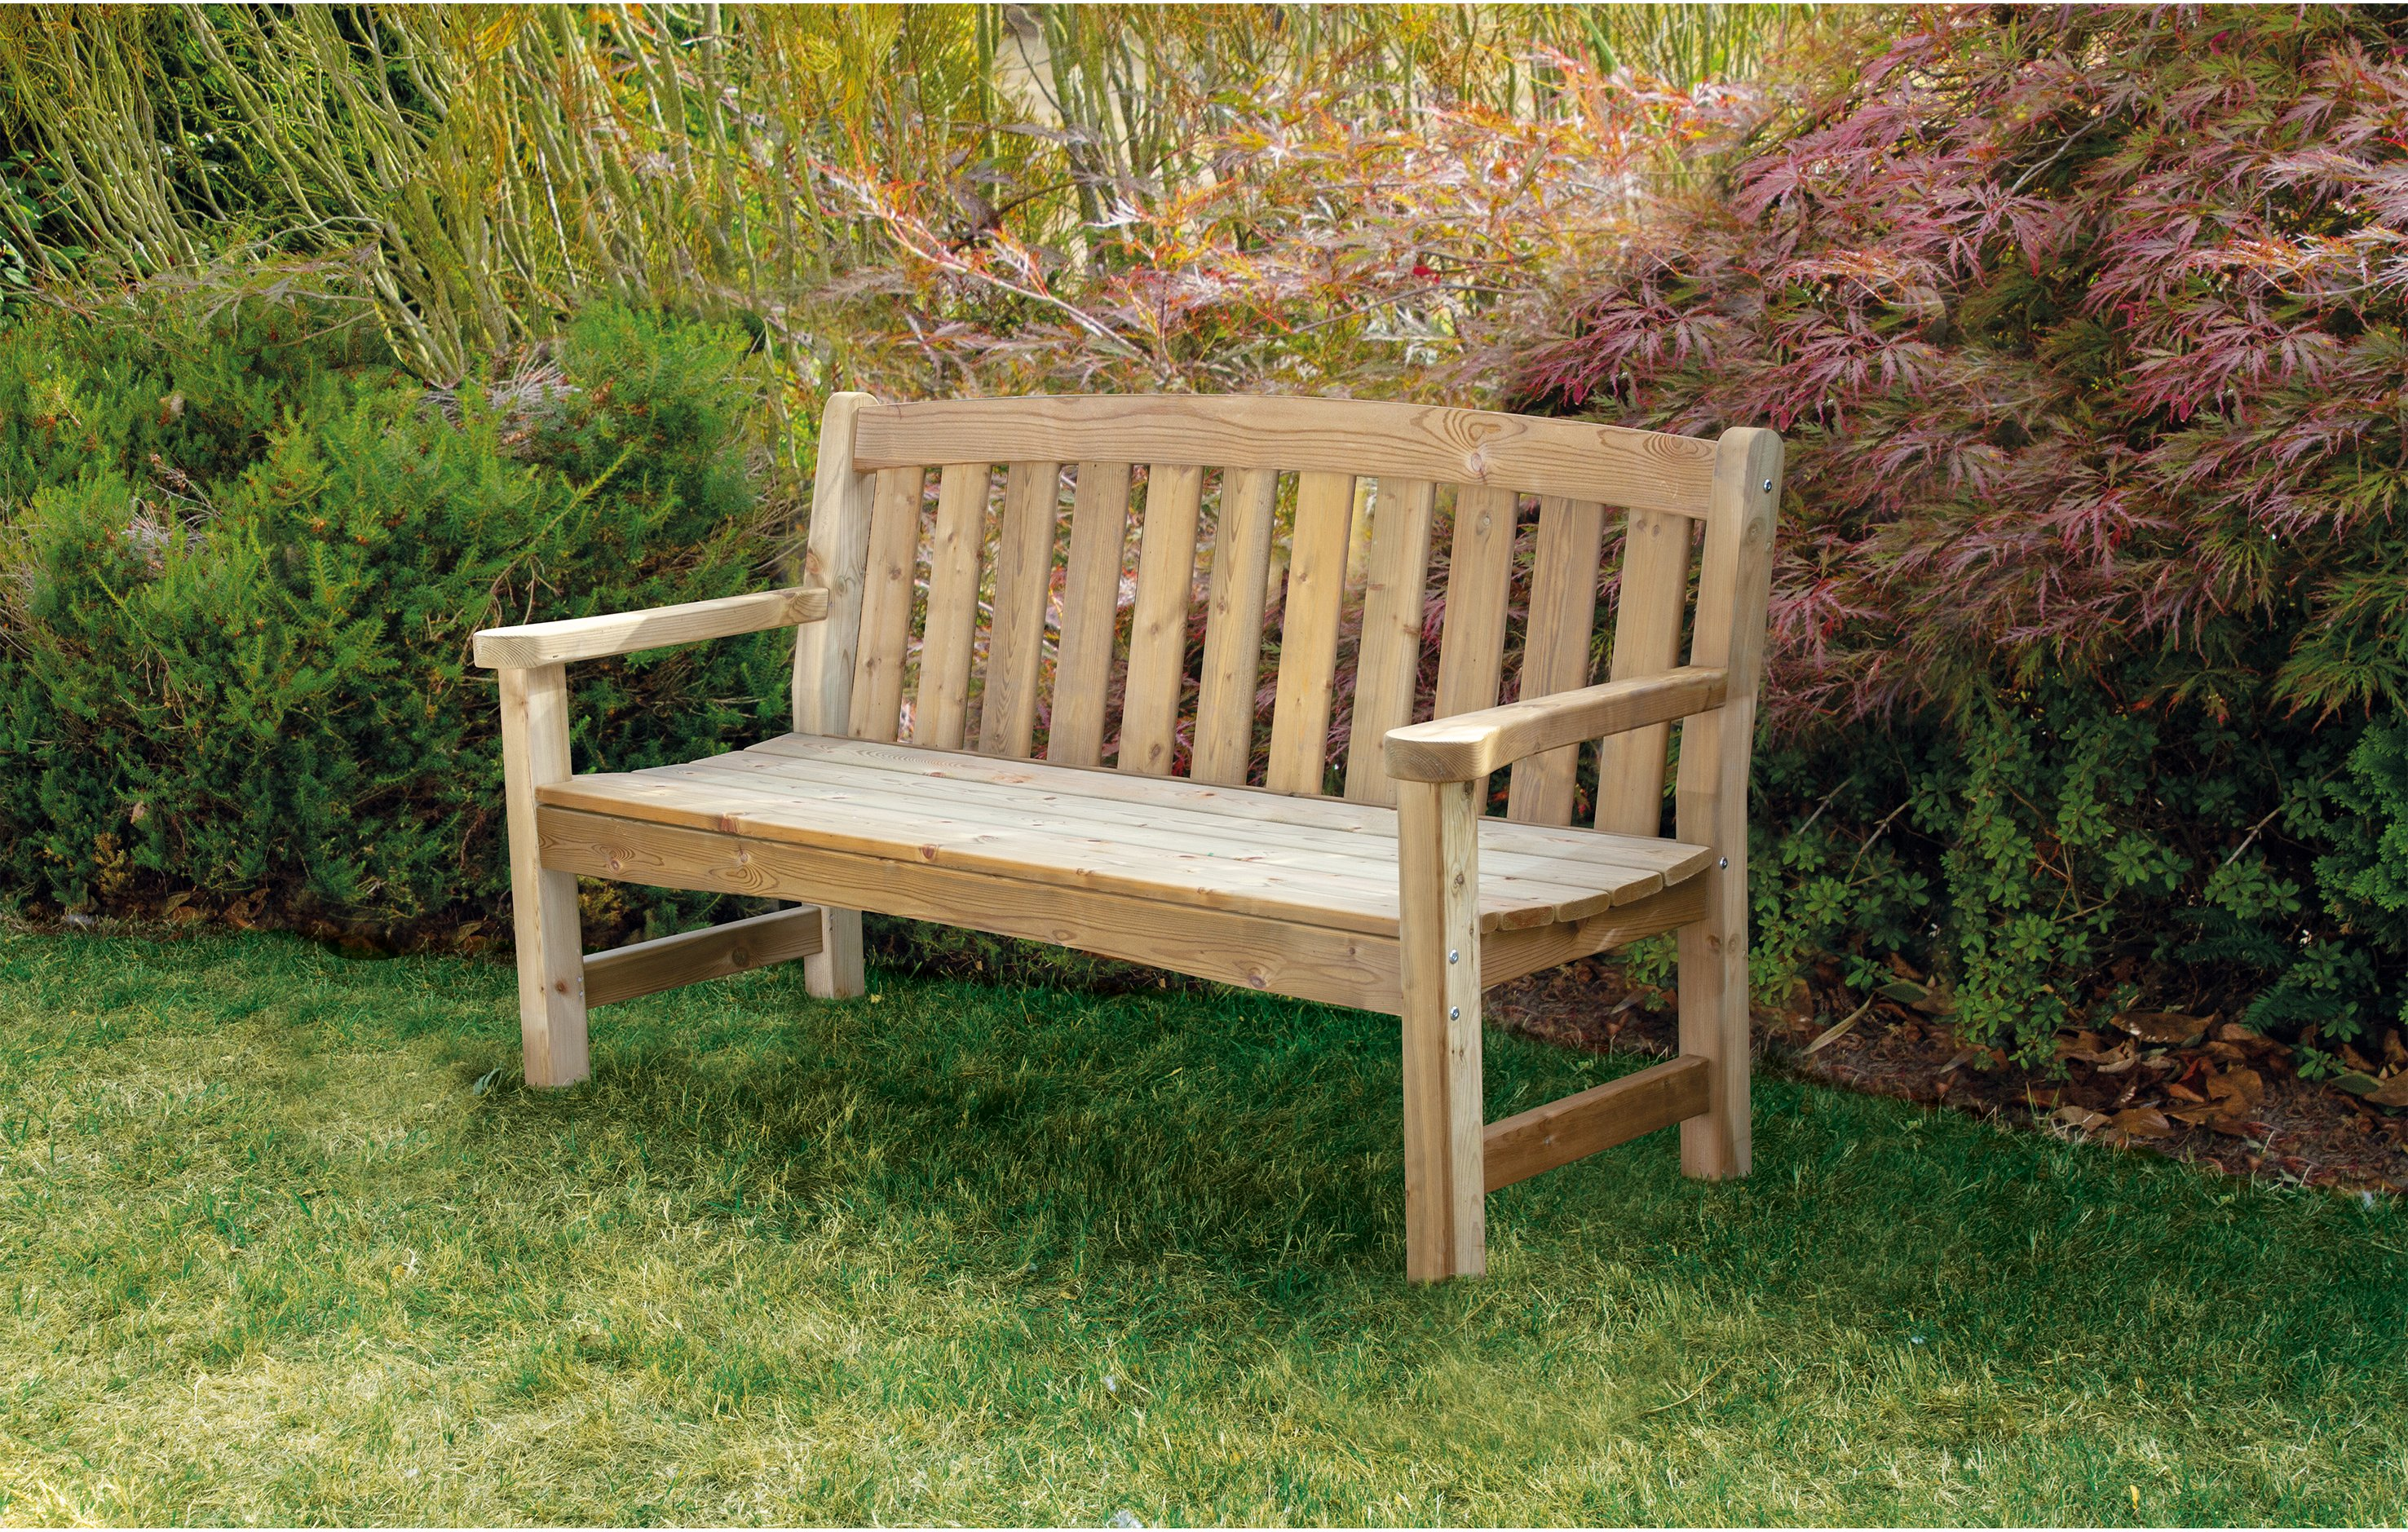 Woodshaw Emsworth 3 Seater Bench Simply Wood